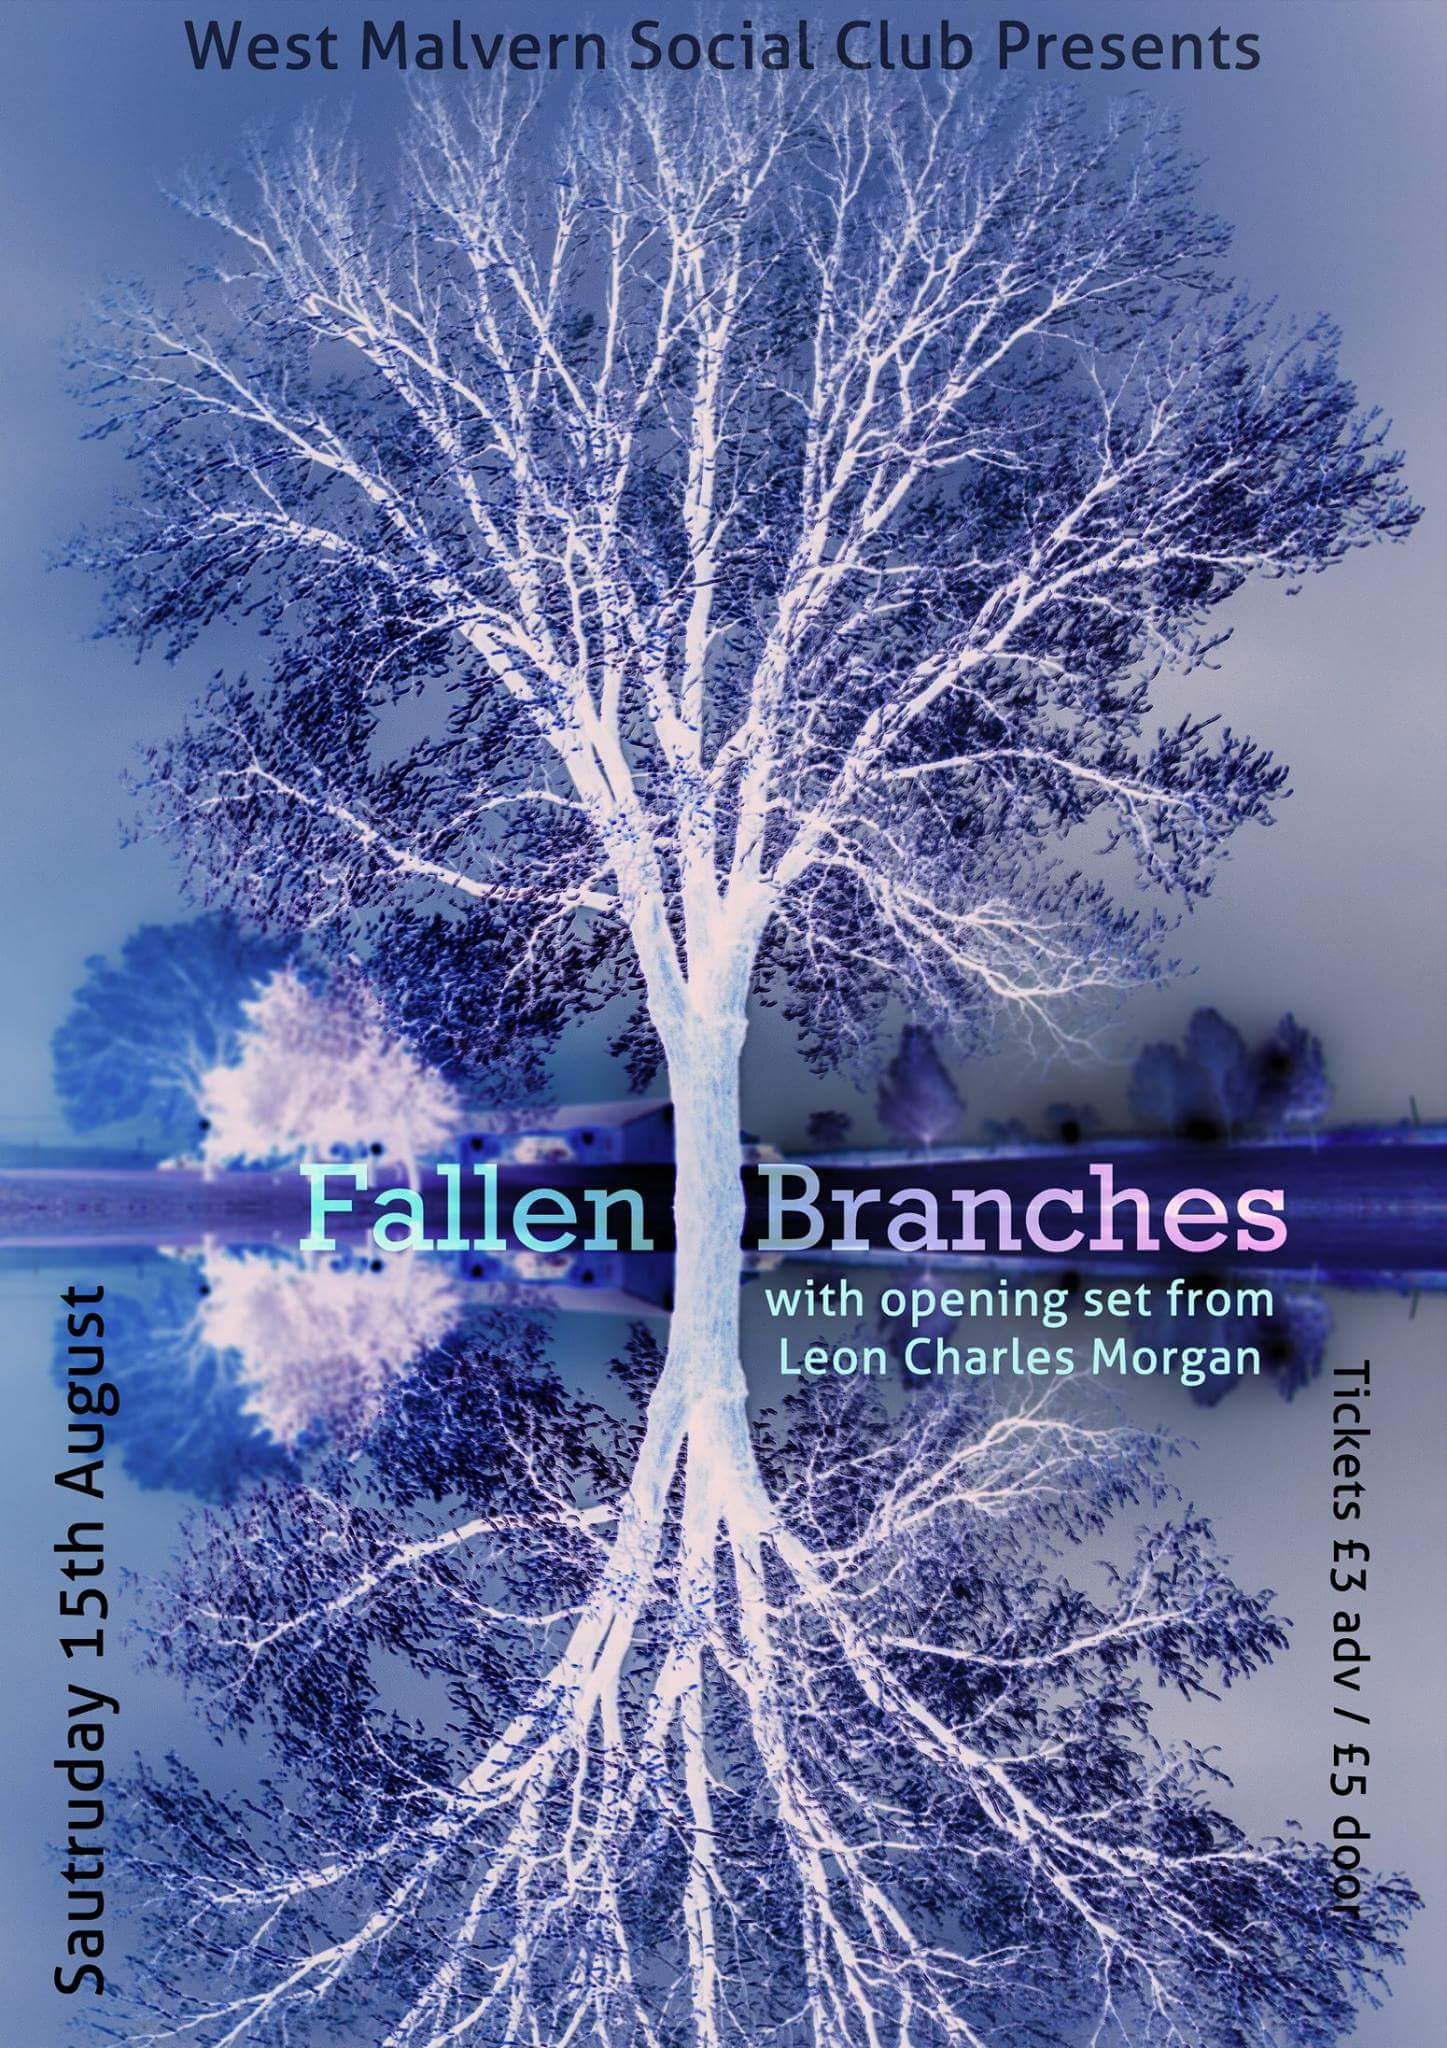 Fallen Branches plus Leon Charles Morgan